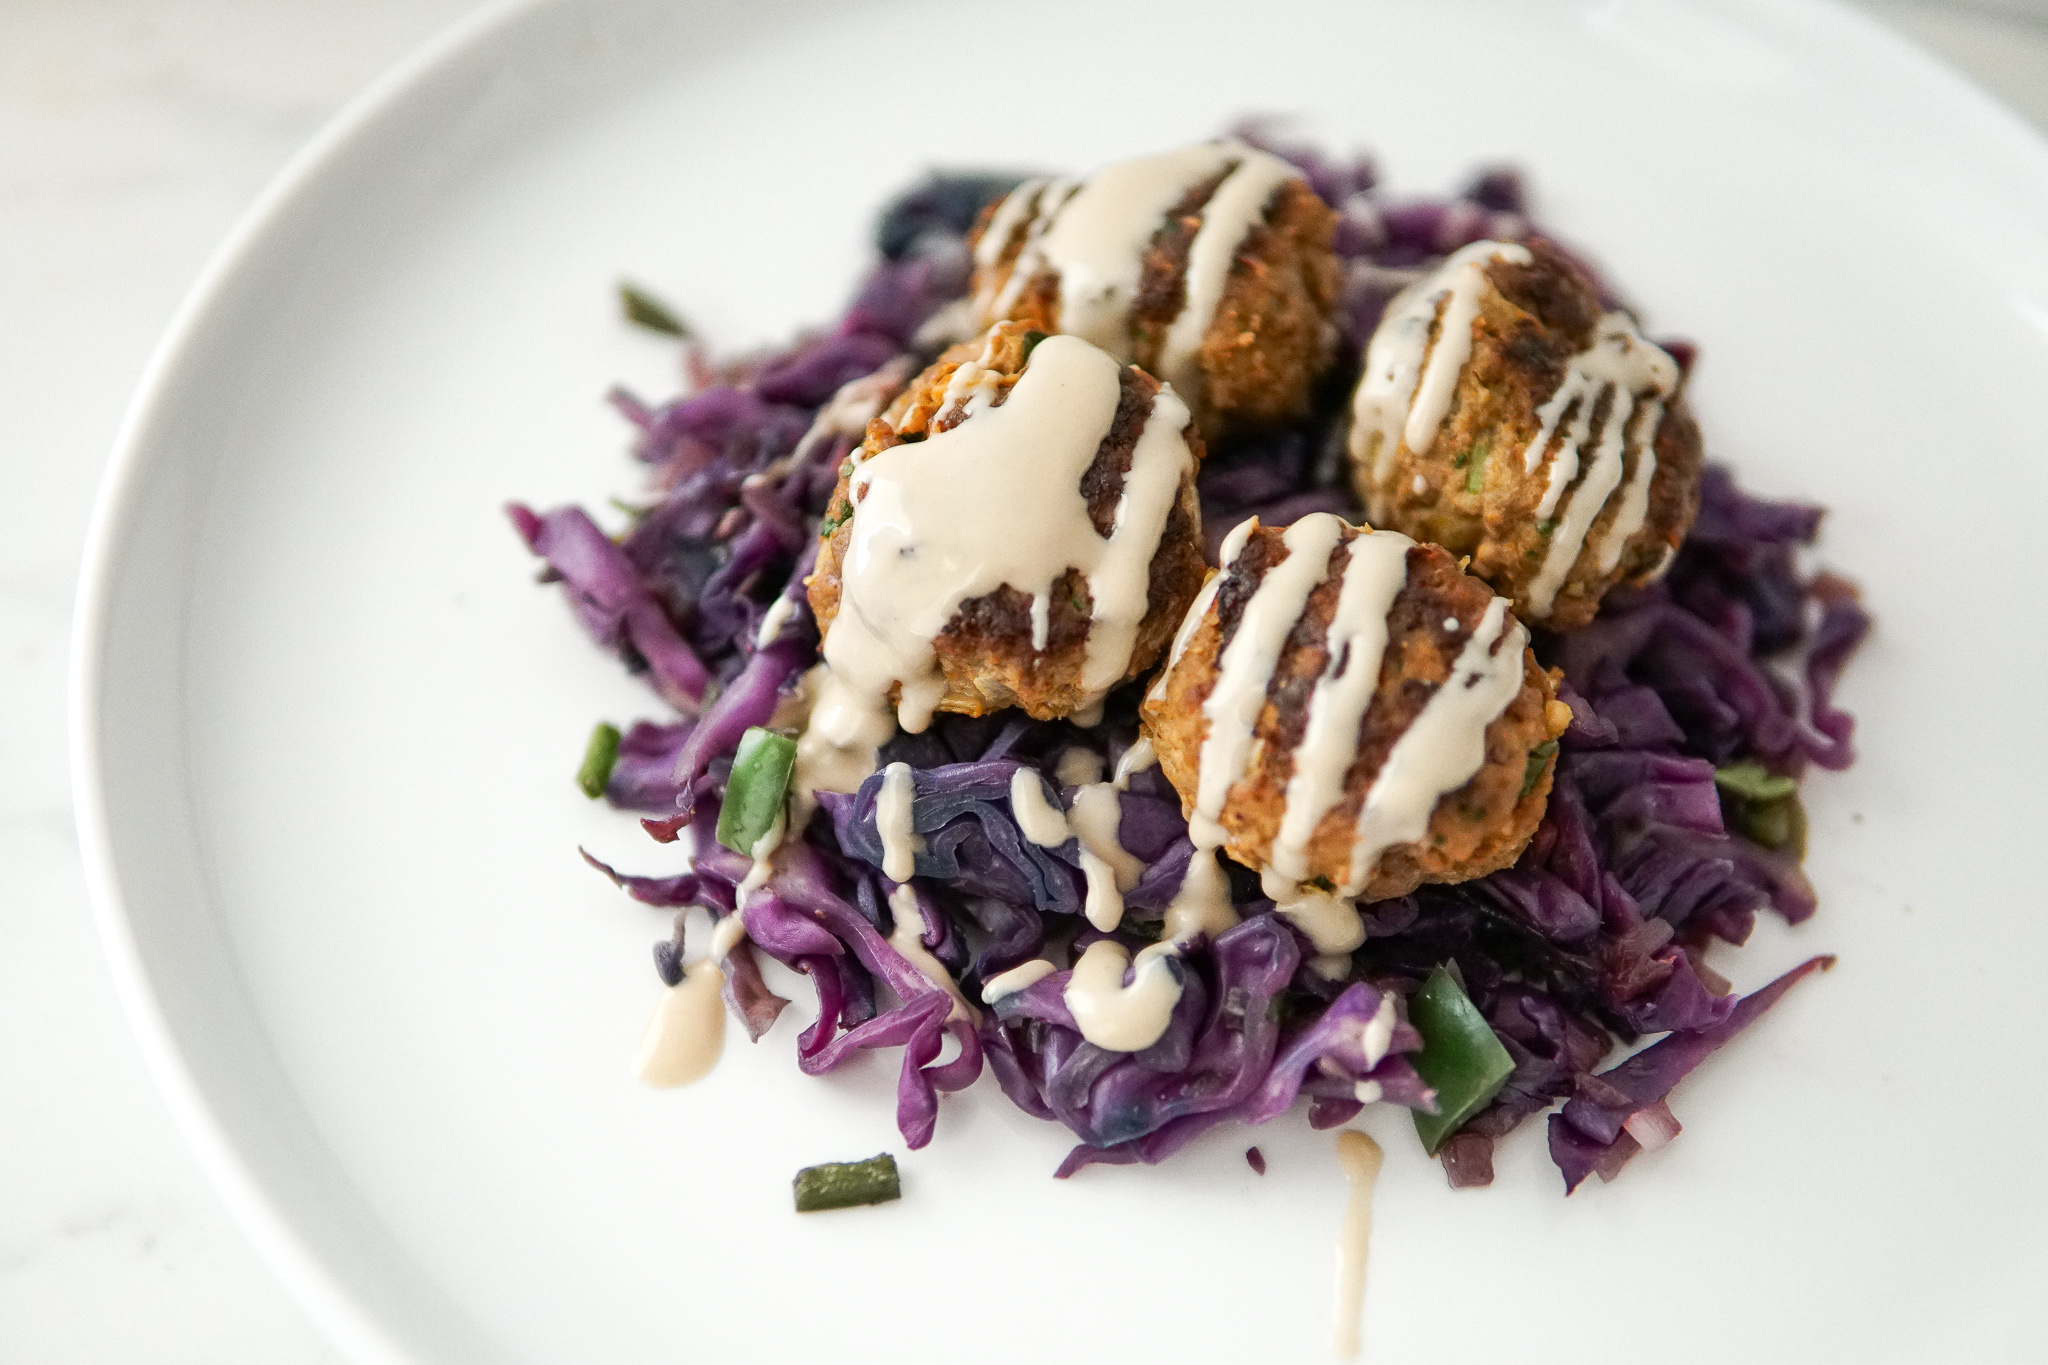 Moroccan spiced meatballs drizzled with tahini